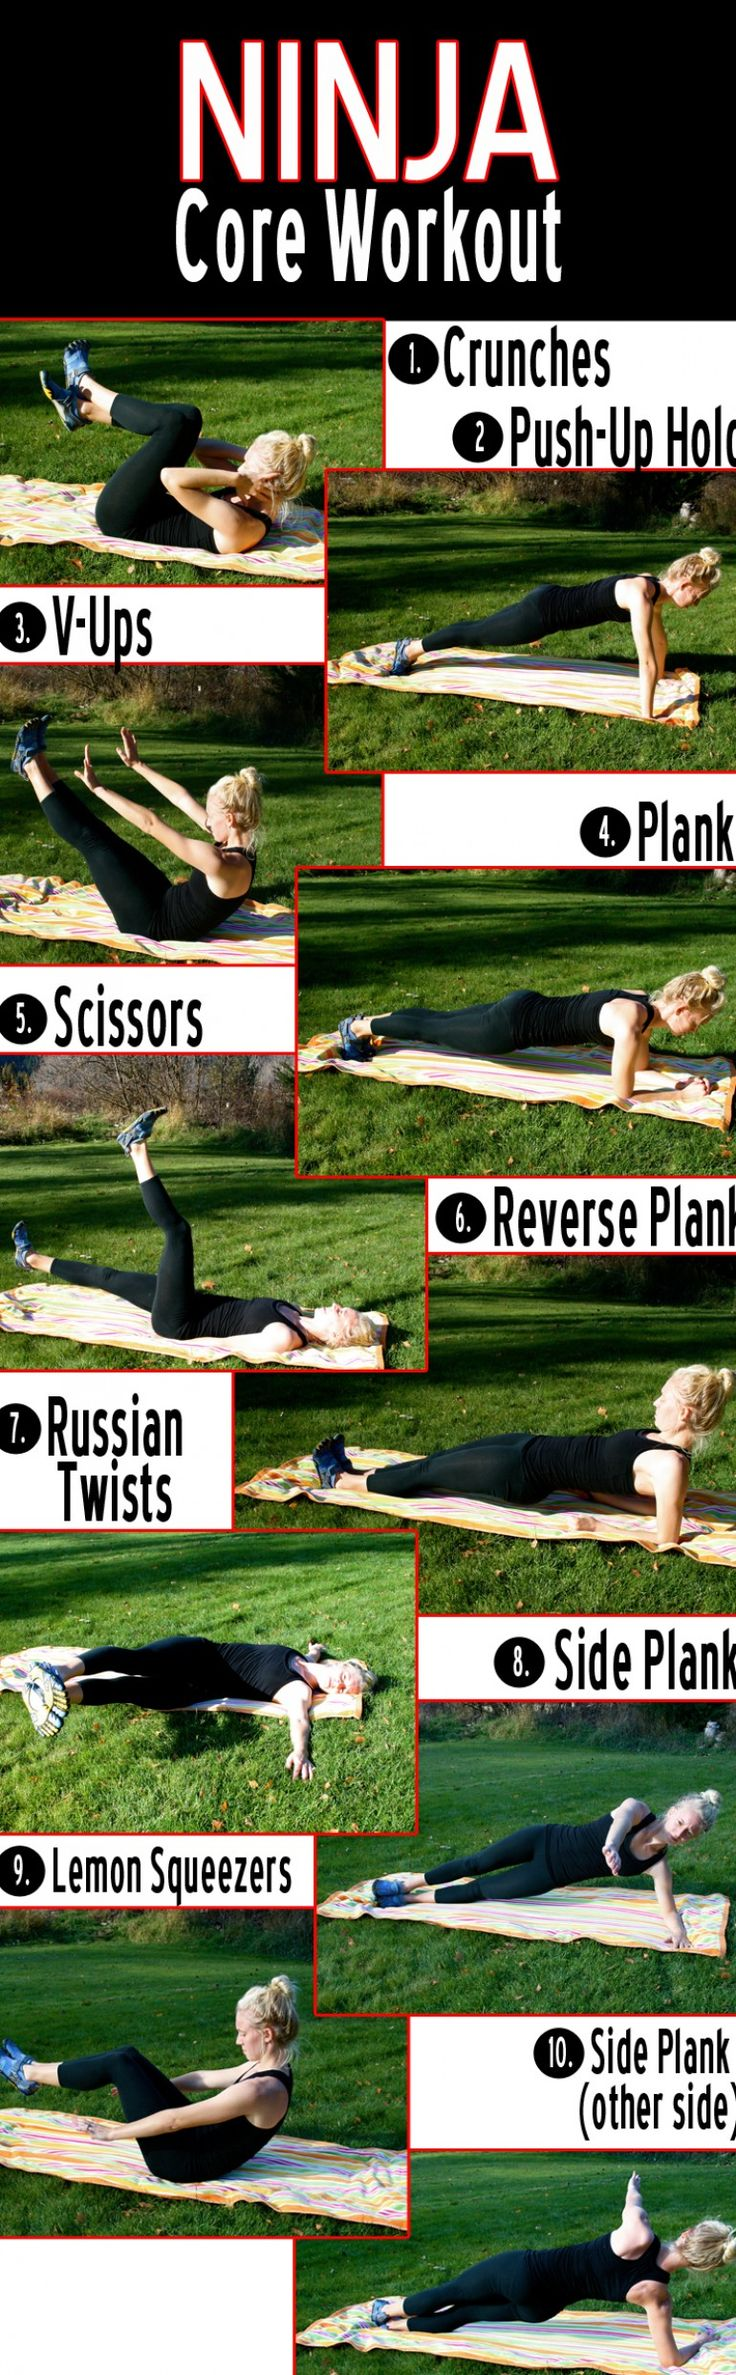 This Daily Workout Routine is specifically aimed to target your core area. This is an awesome workout.